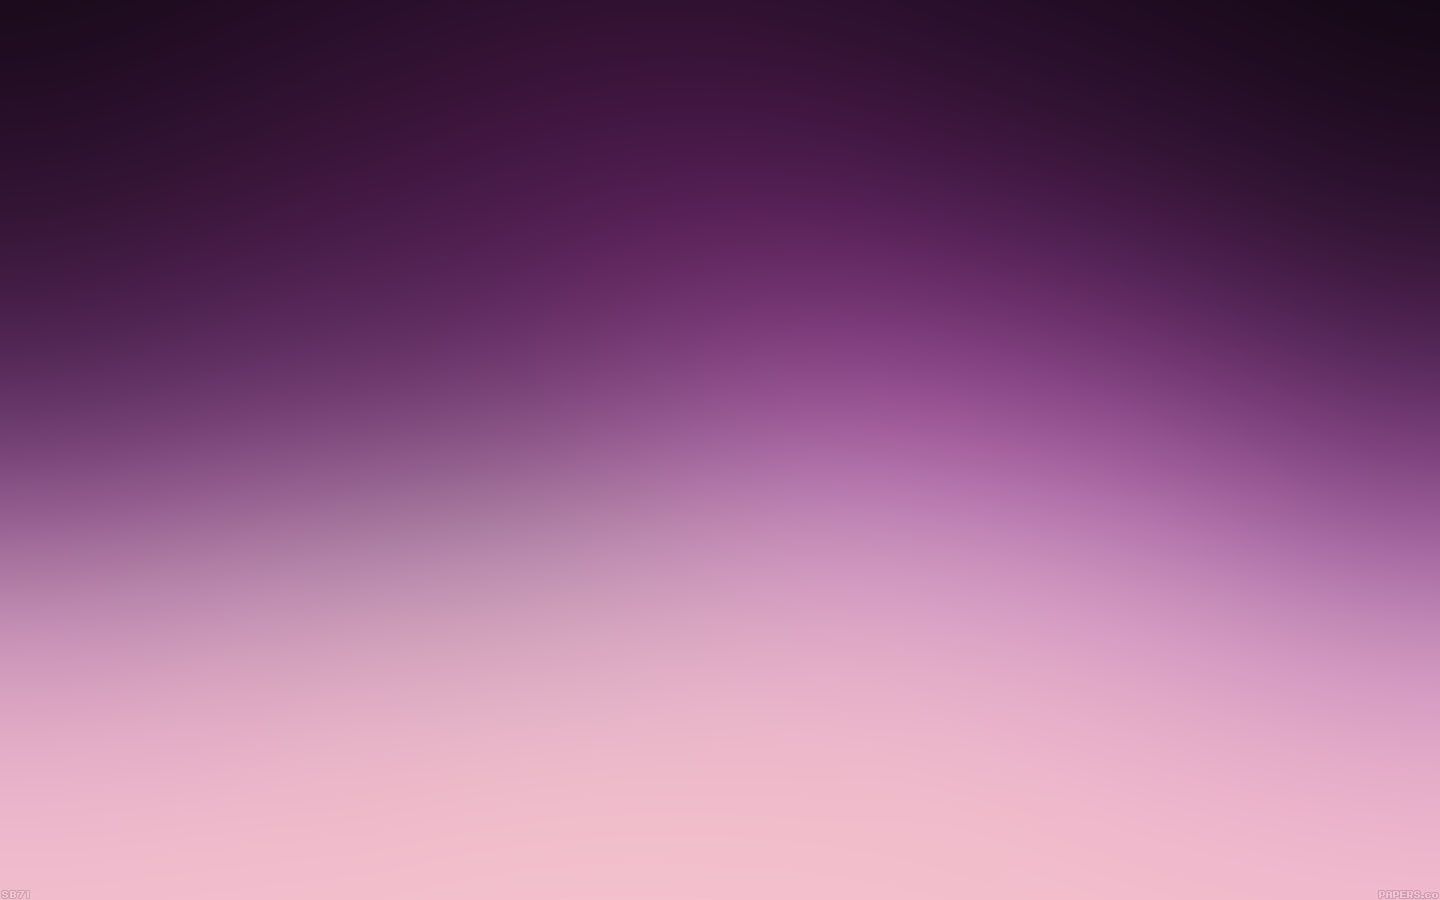 Pink Apple Wallpaper Iphone Sb71 Romantic Purple Blur Papers Co